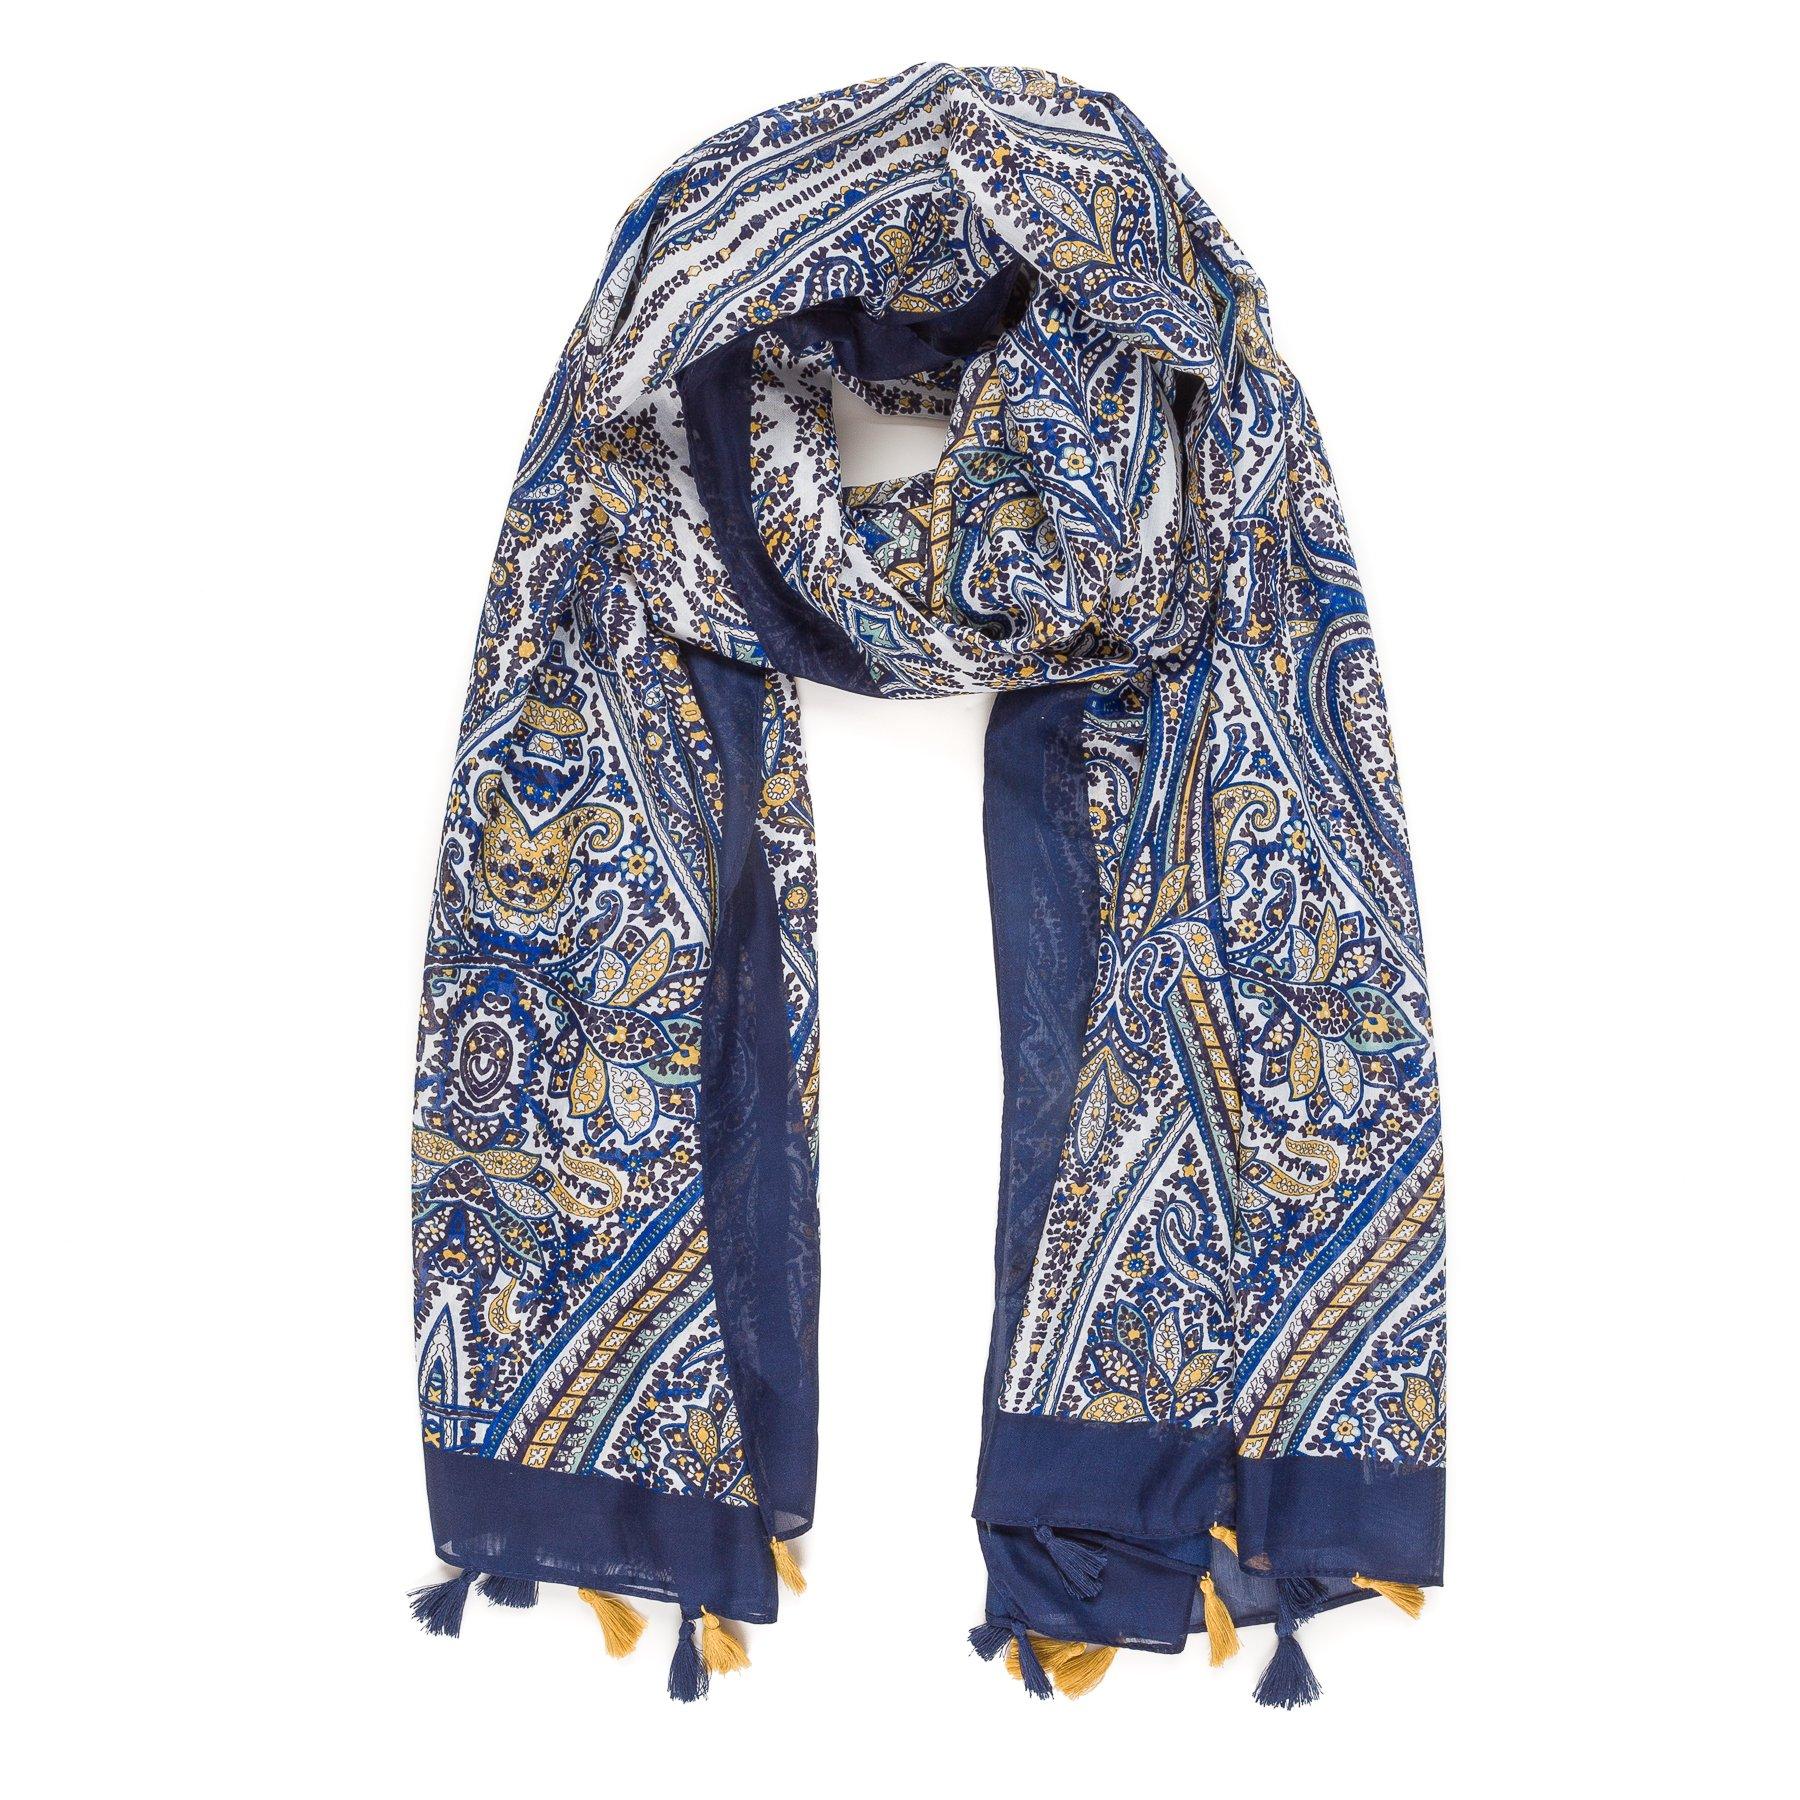 Scarf for Women Lightweight Paisley Fashion Fall Winter Scarves Shawl Wraps (B042-2)